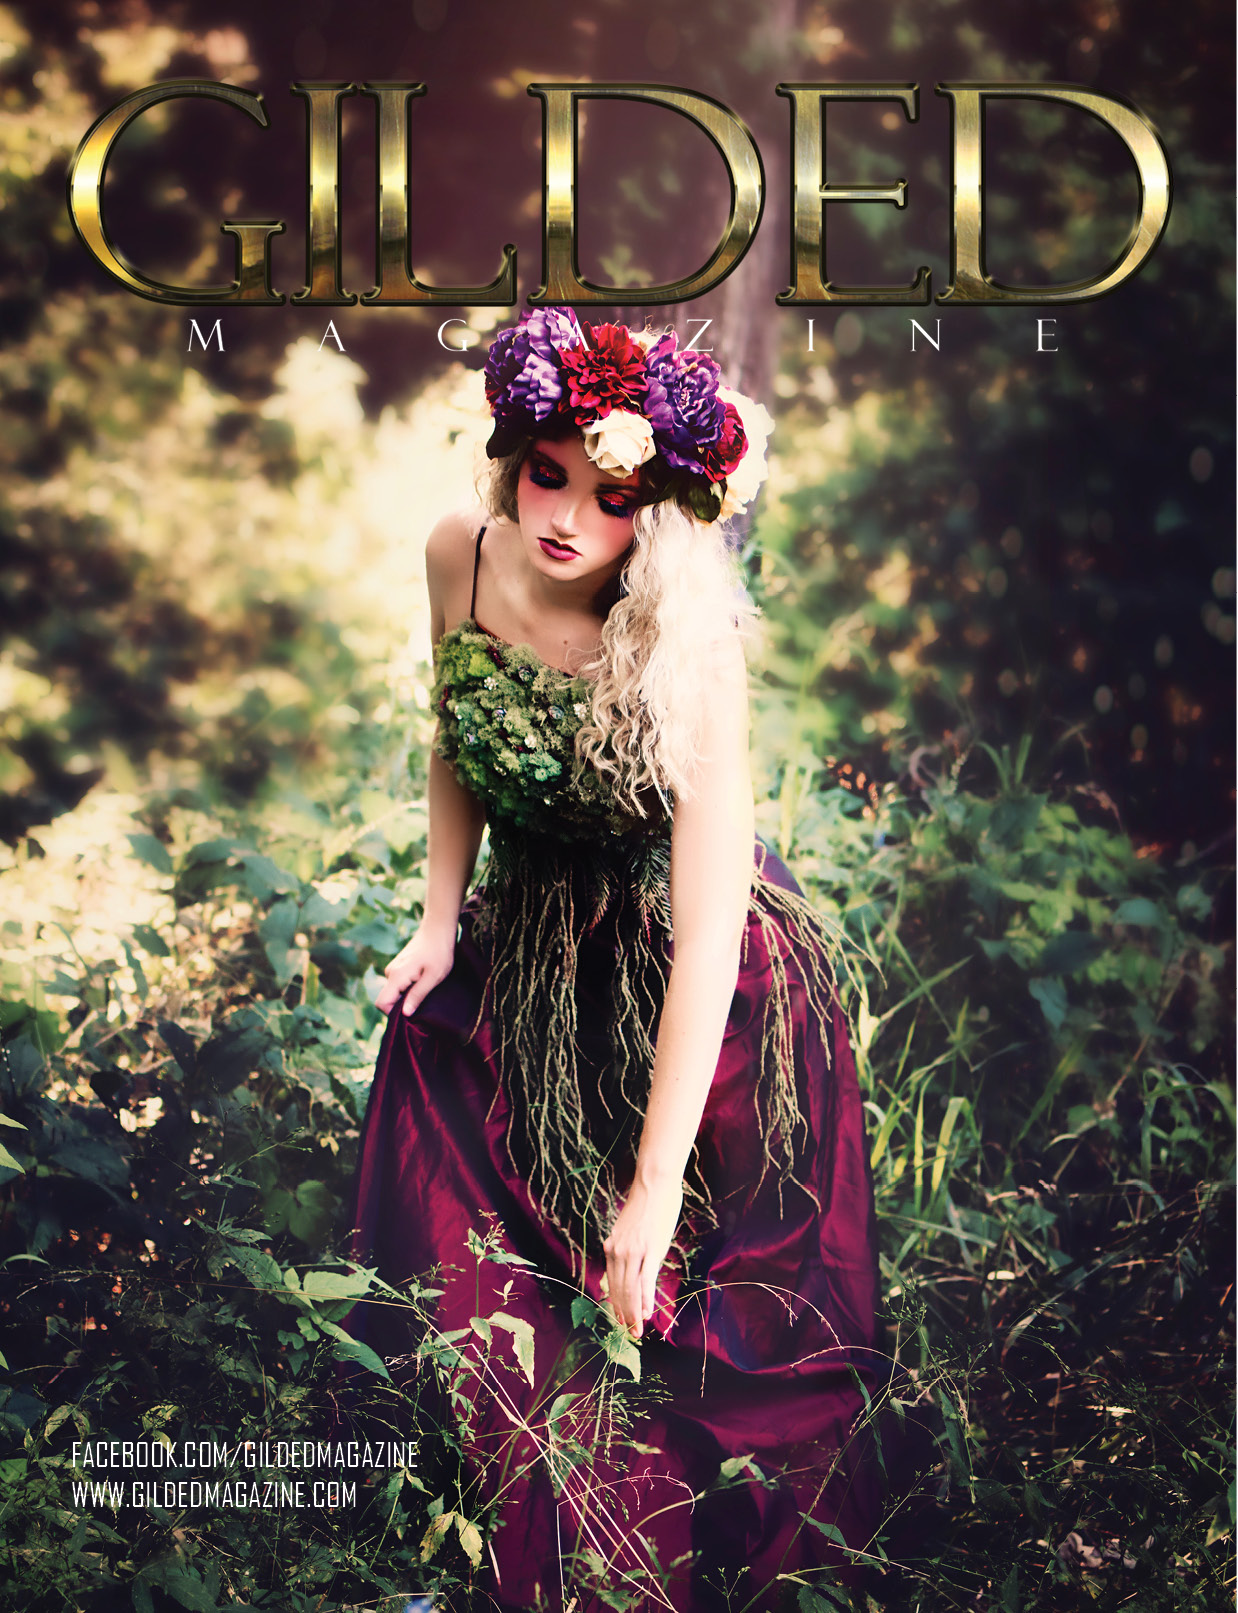 Gilded-Issue027Vol1-042.jpg